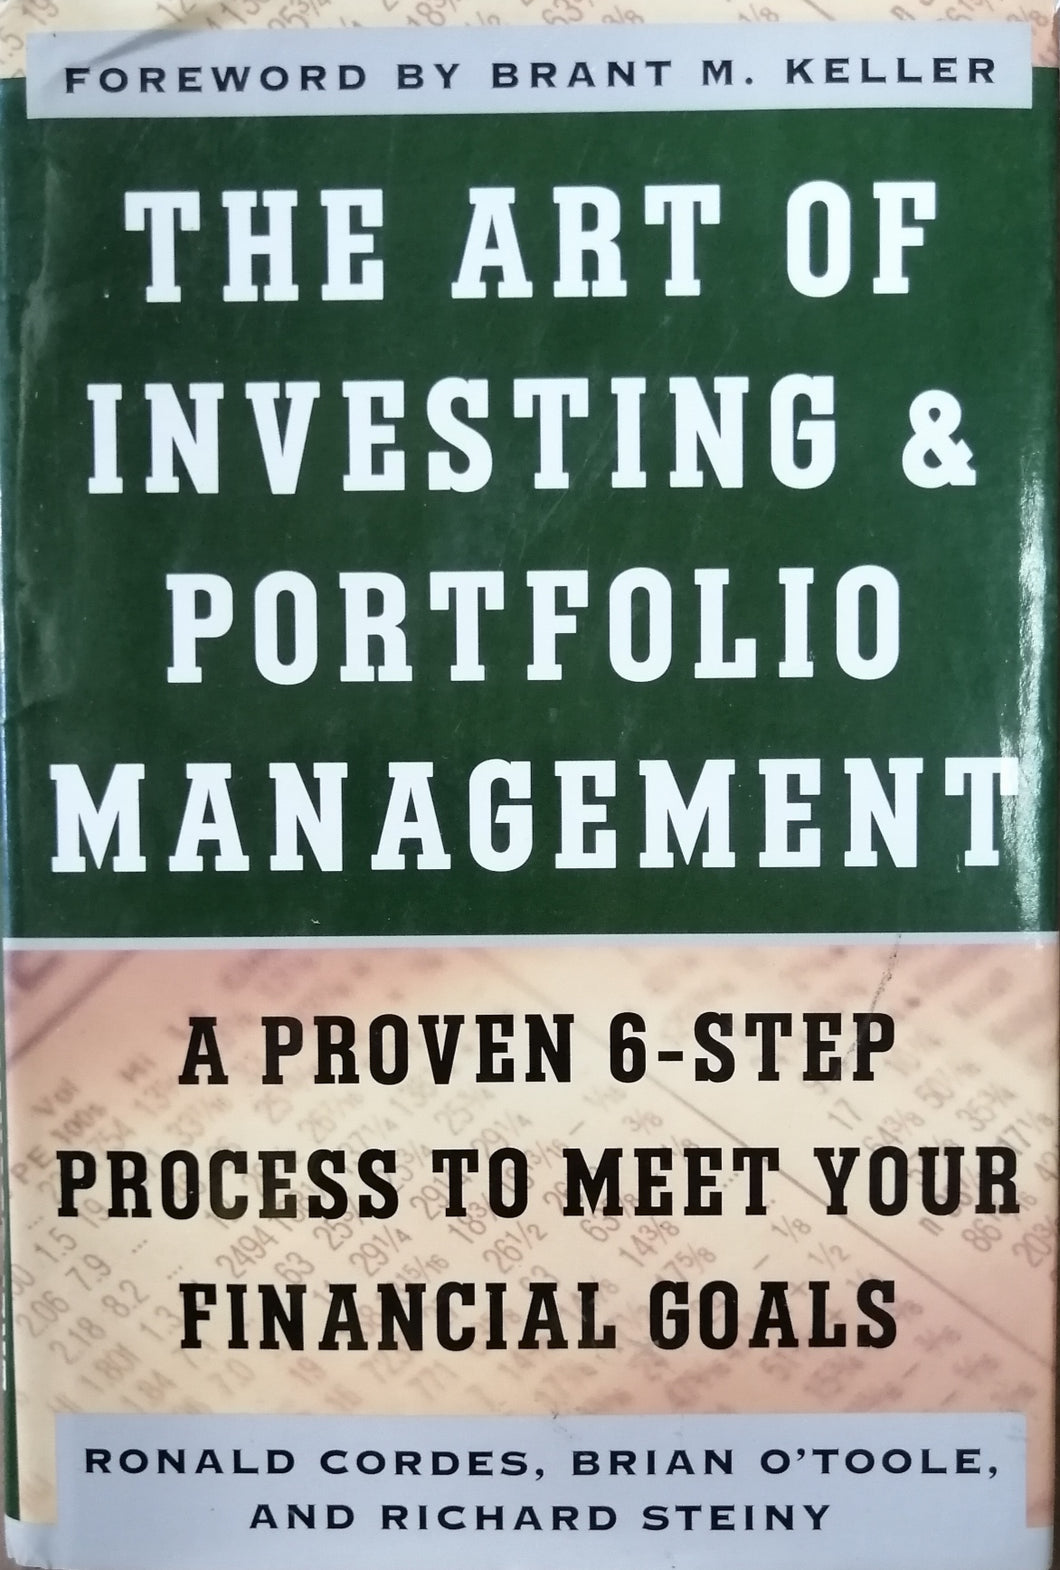 The art of investing & portfolio management by Ronald cordes